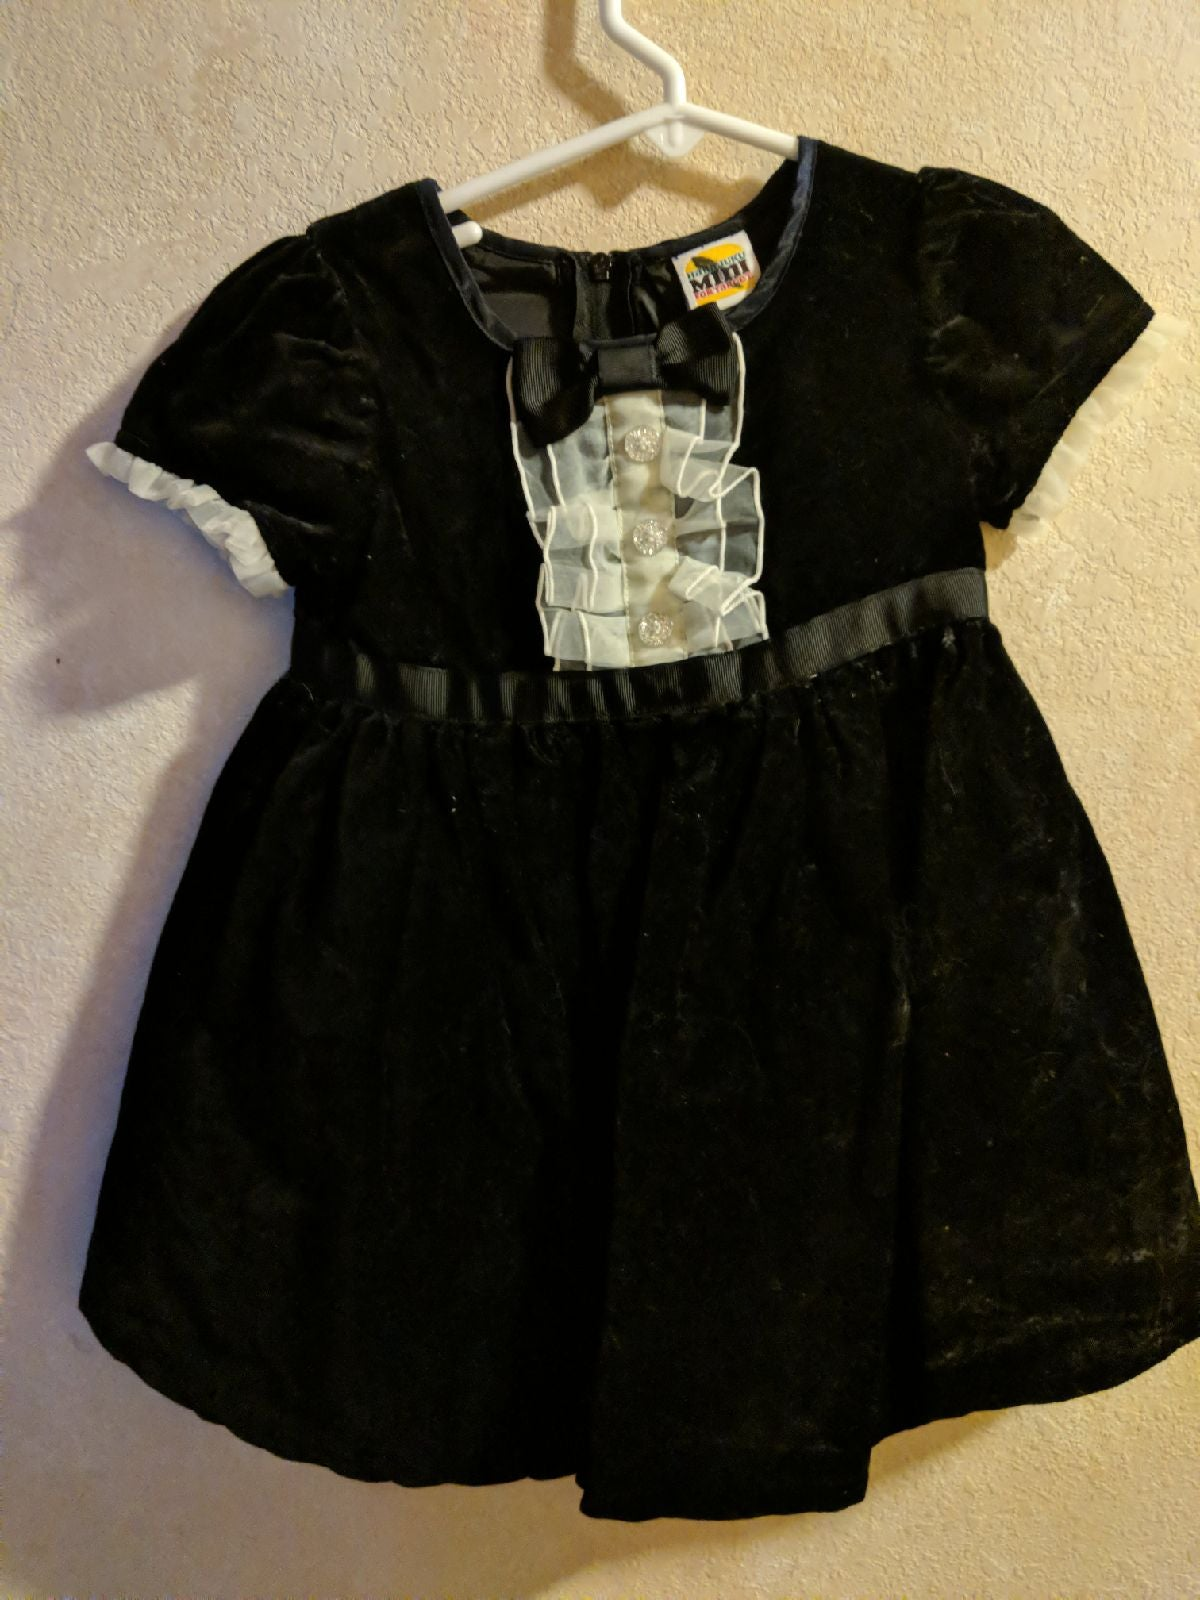 Mini Harajuku 3T black velvet dress